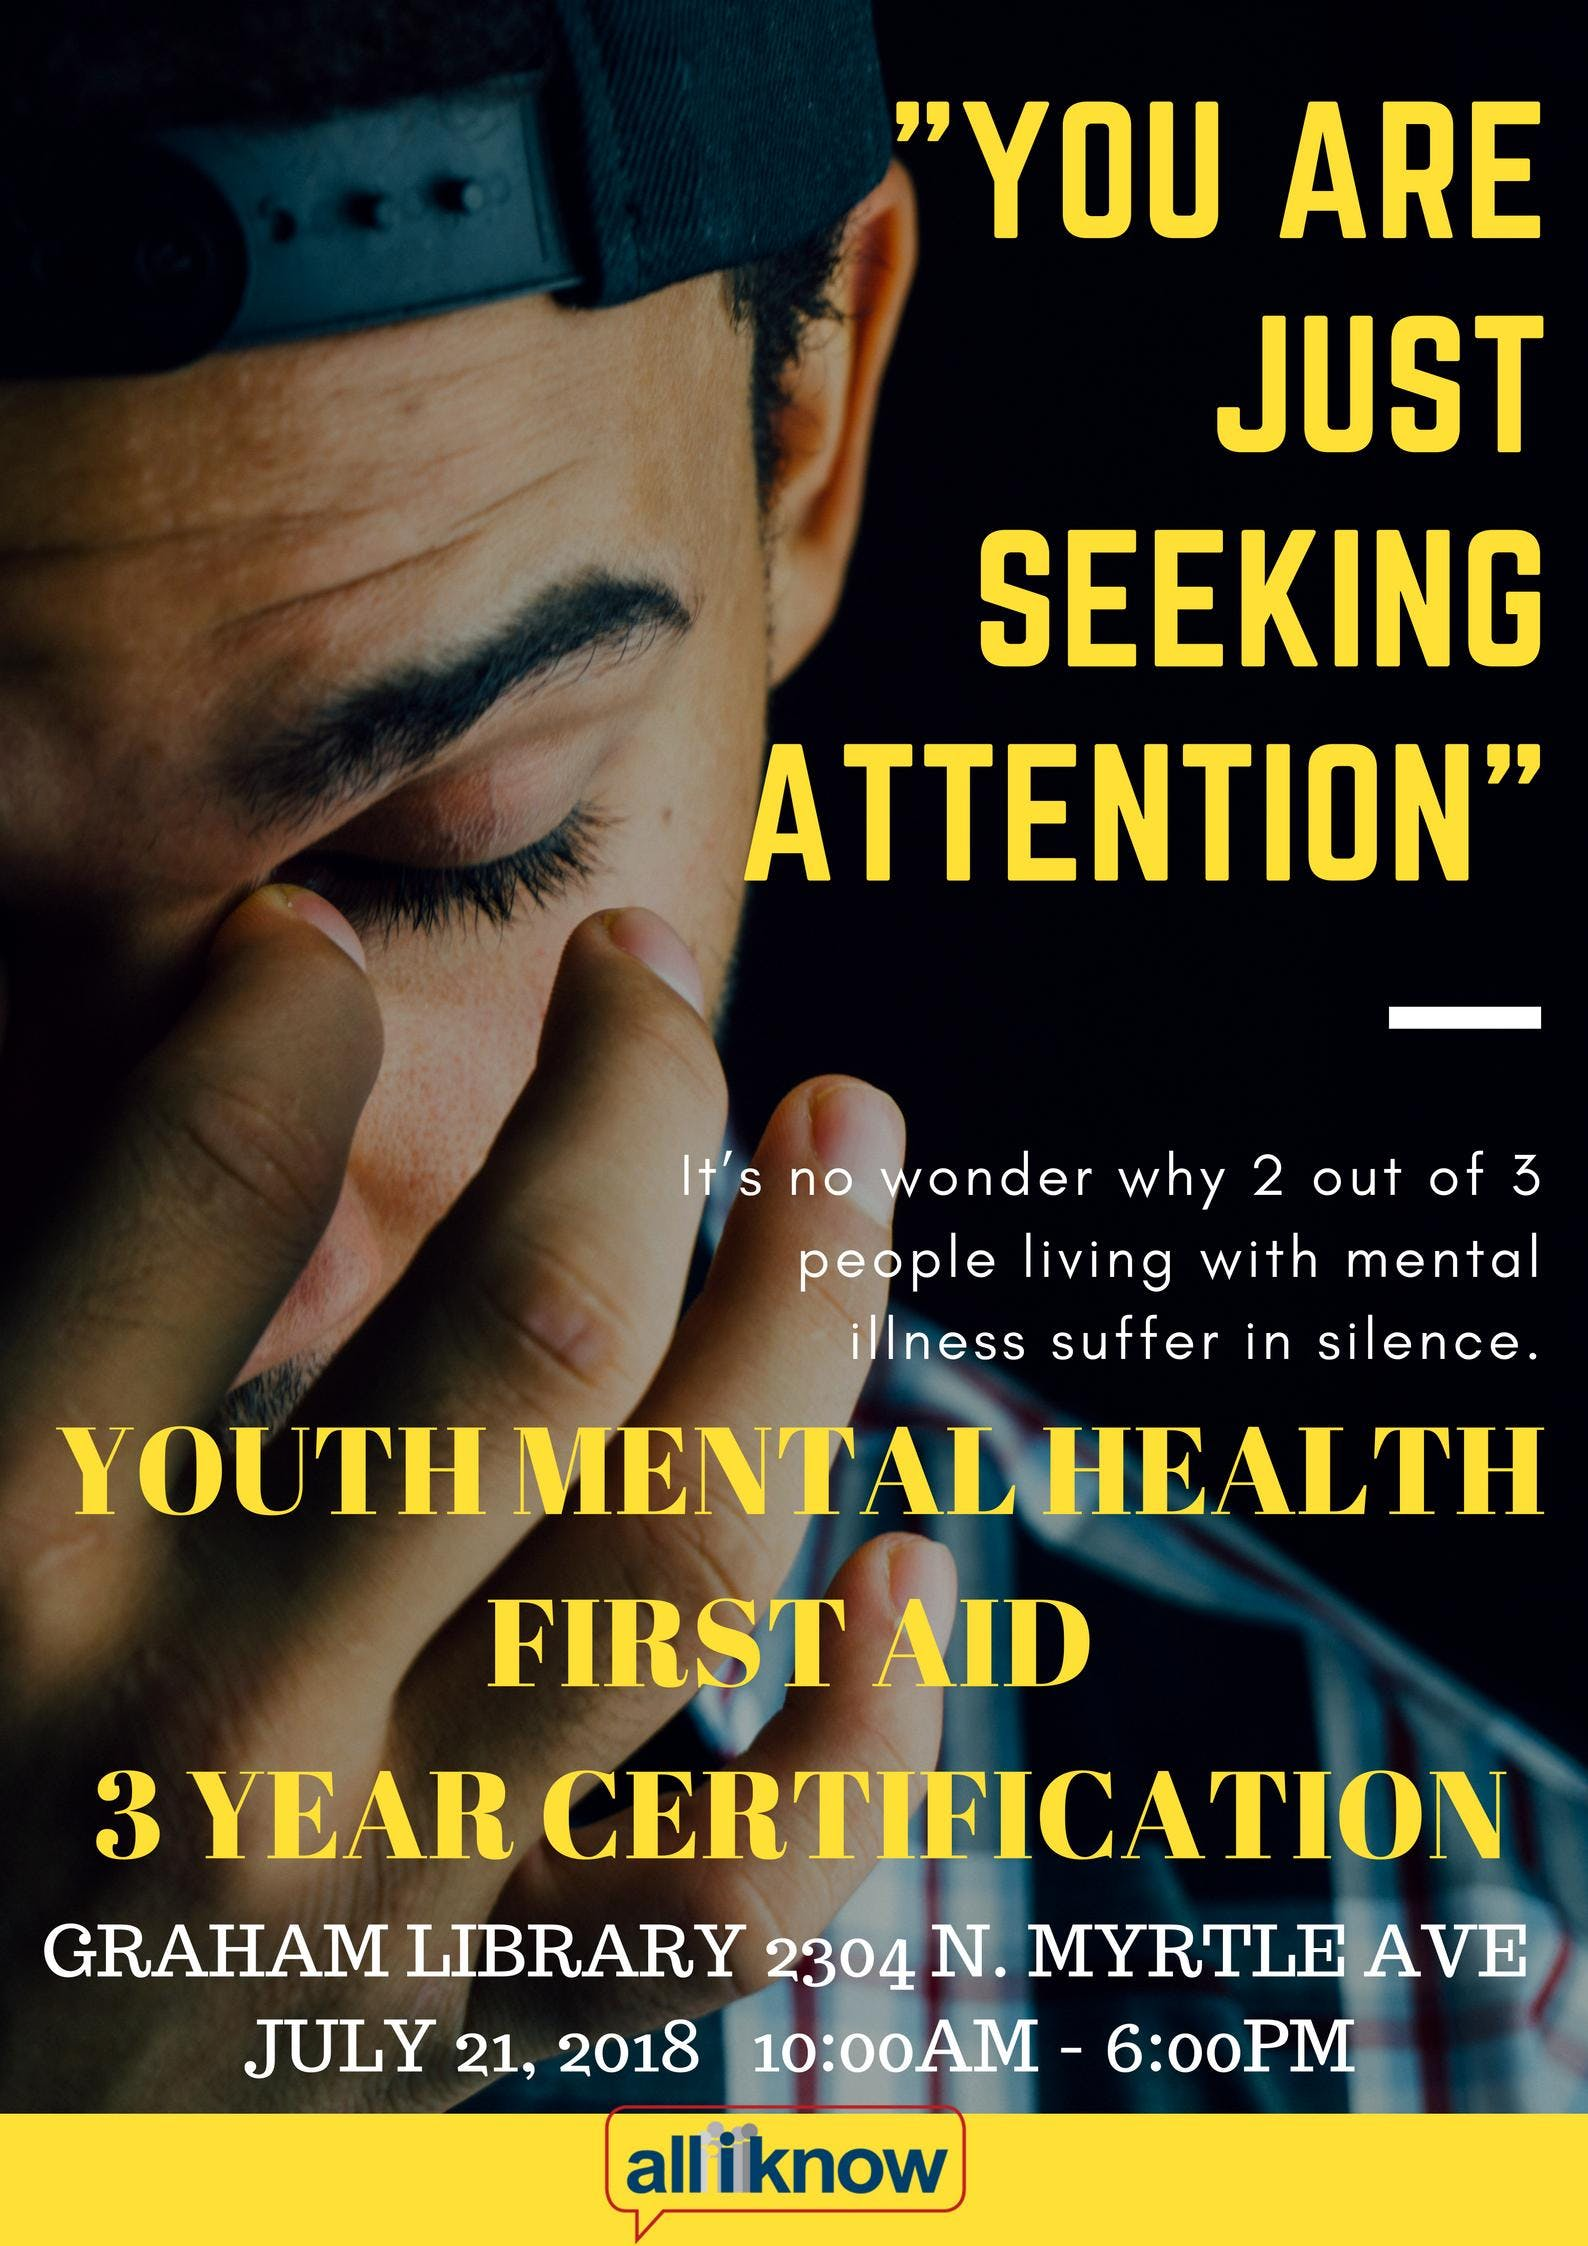 Youth Mental Health First Aid Certification At Graham Branch Library